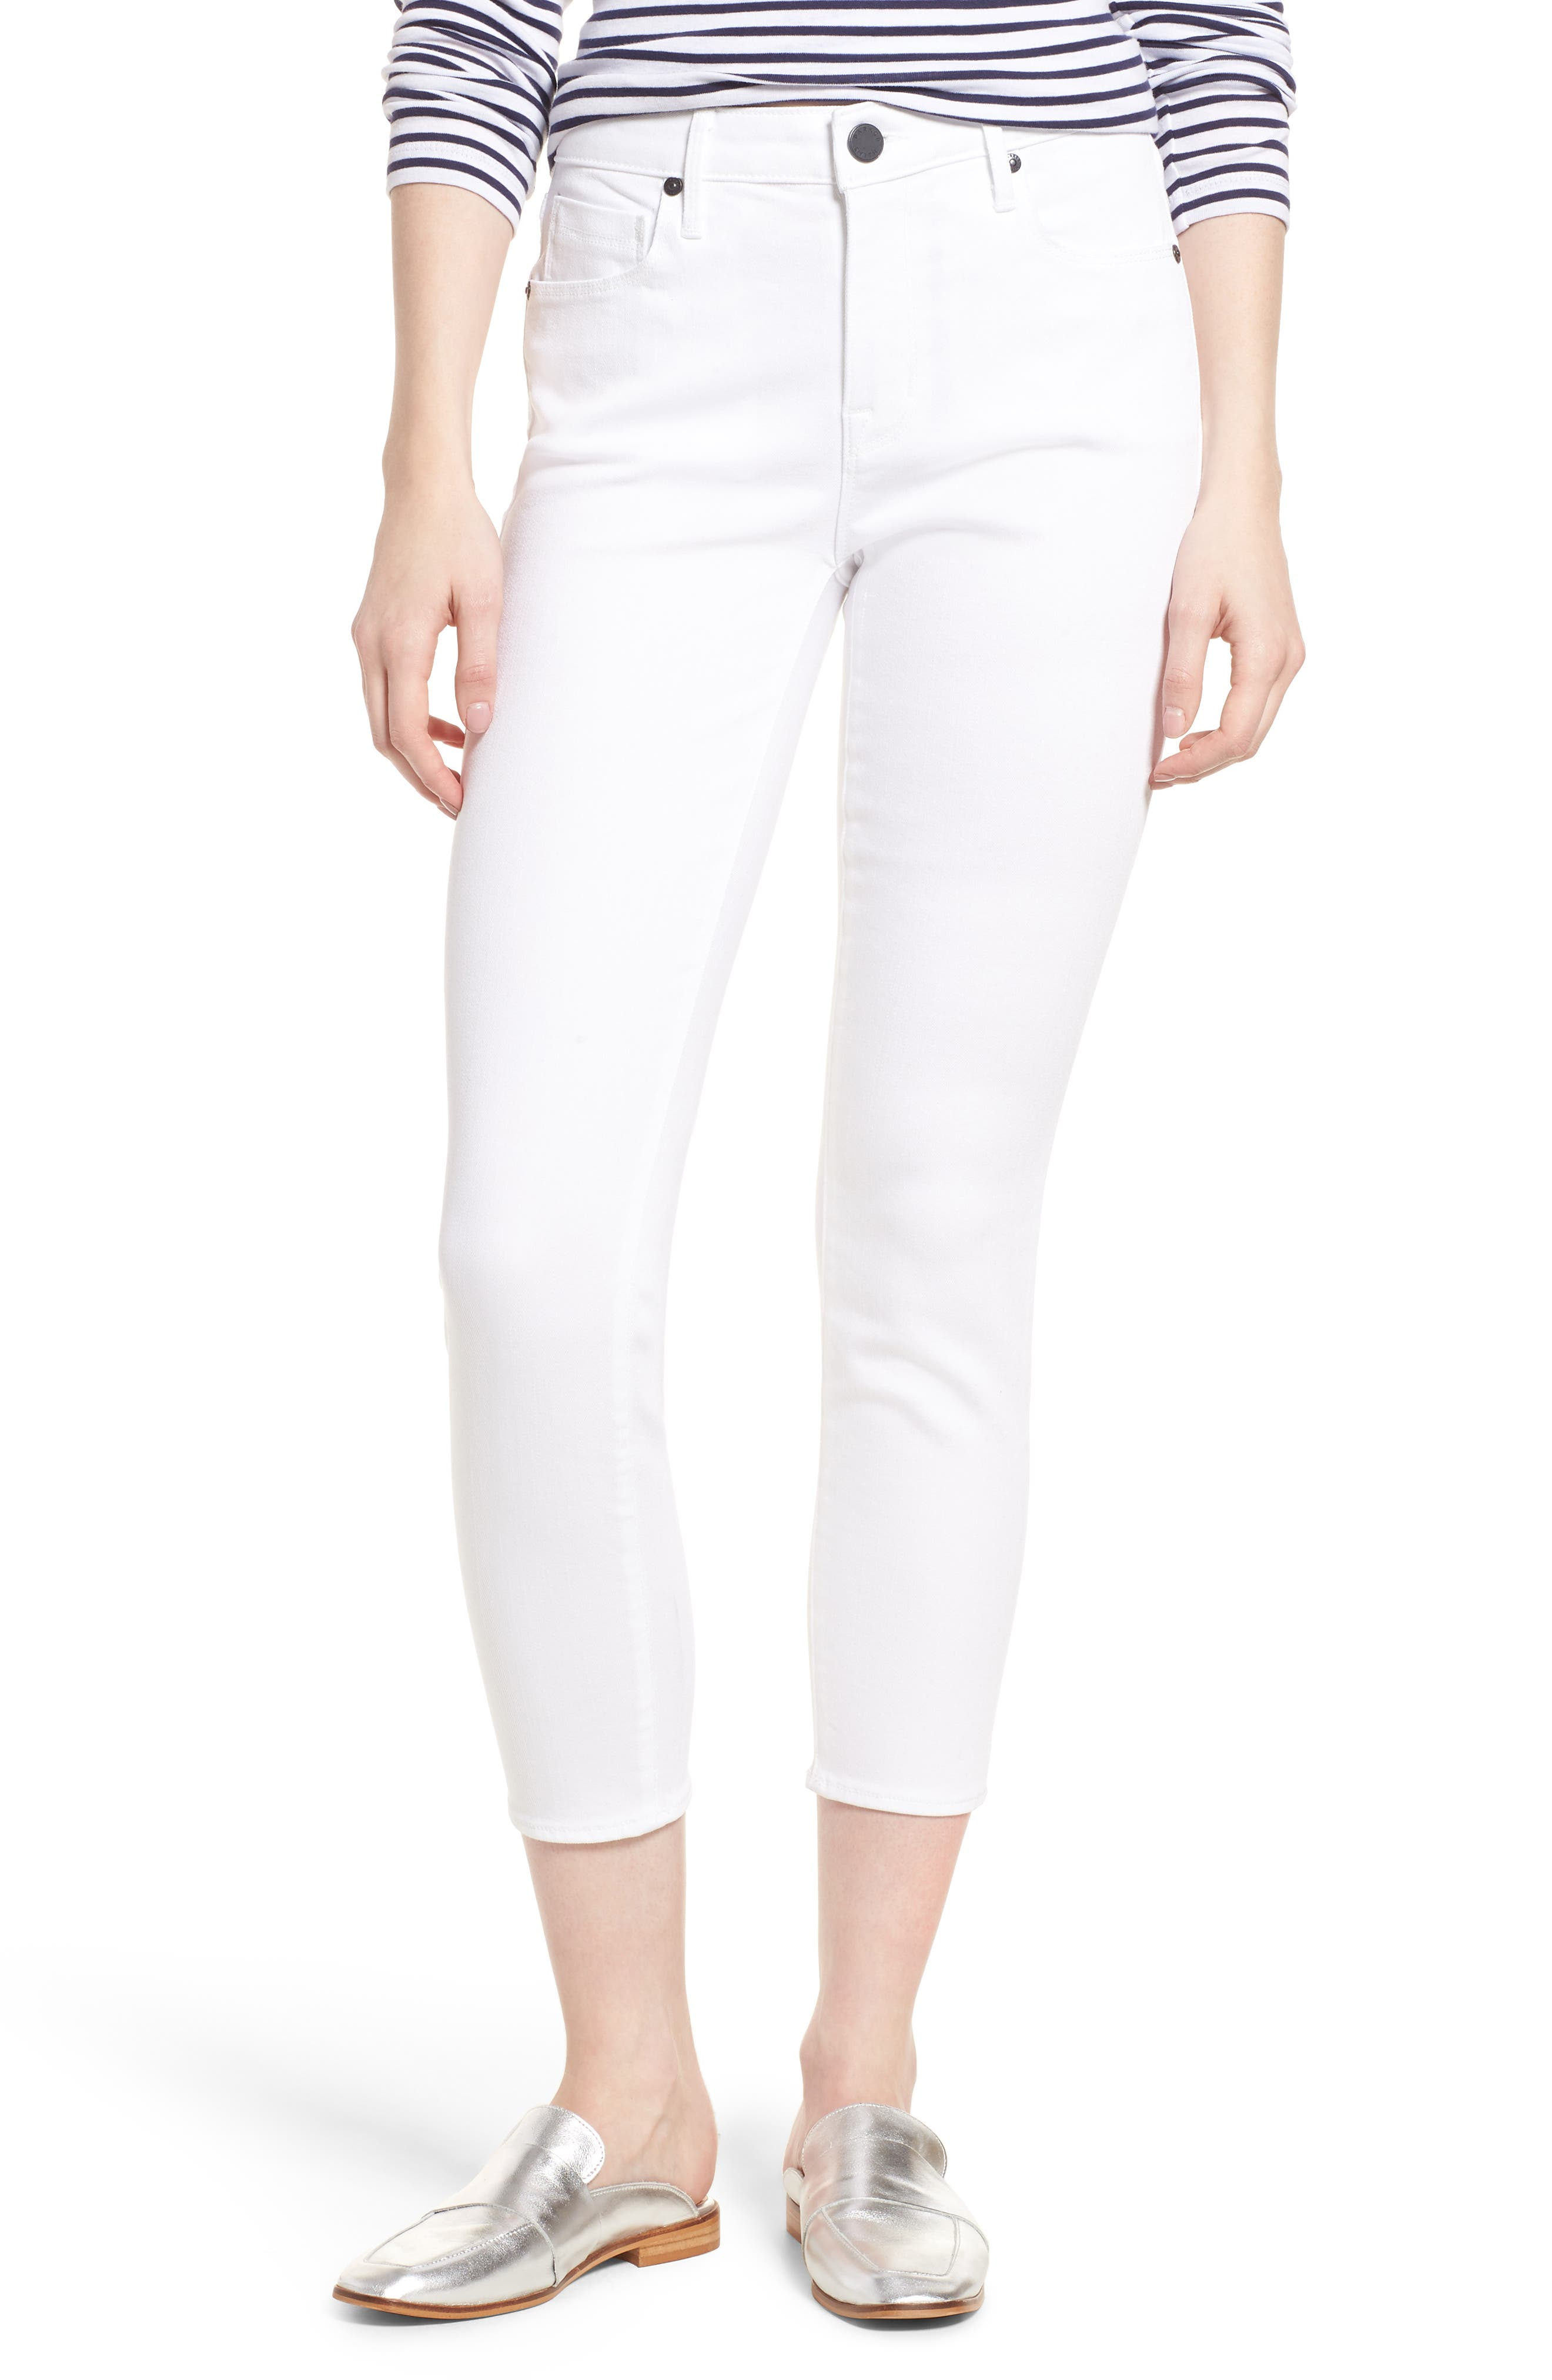 Ava Crop Skinny Jeans,                         Main,                         color, 100